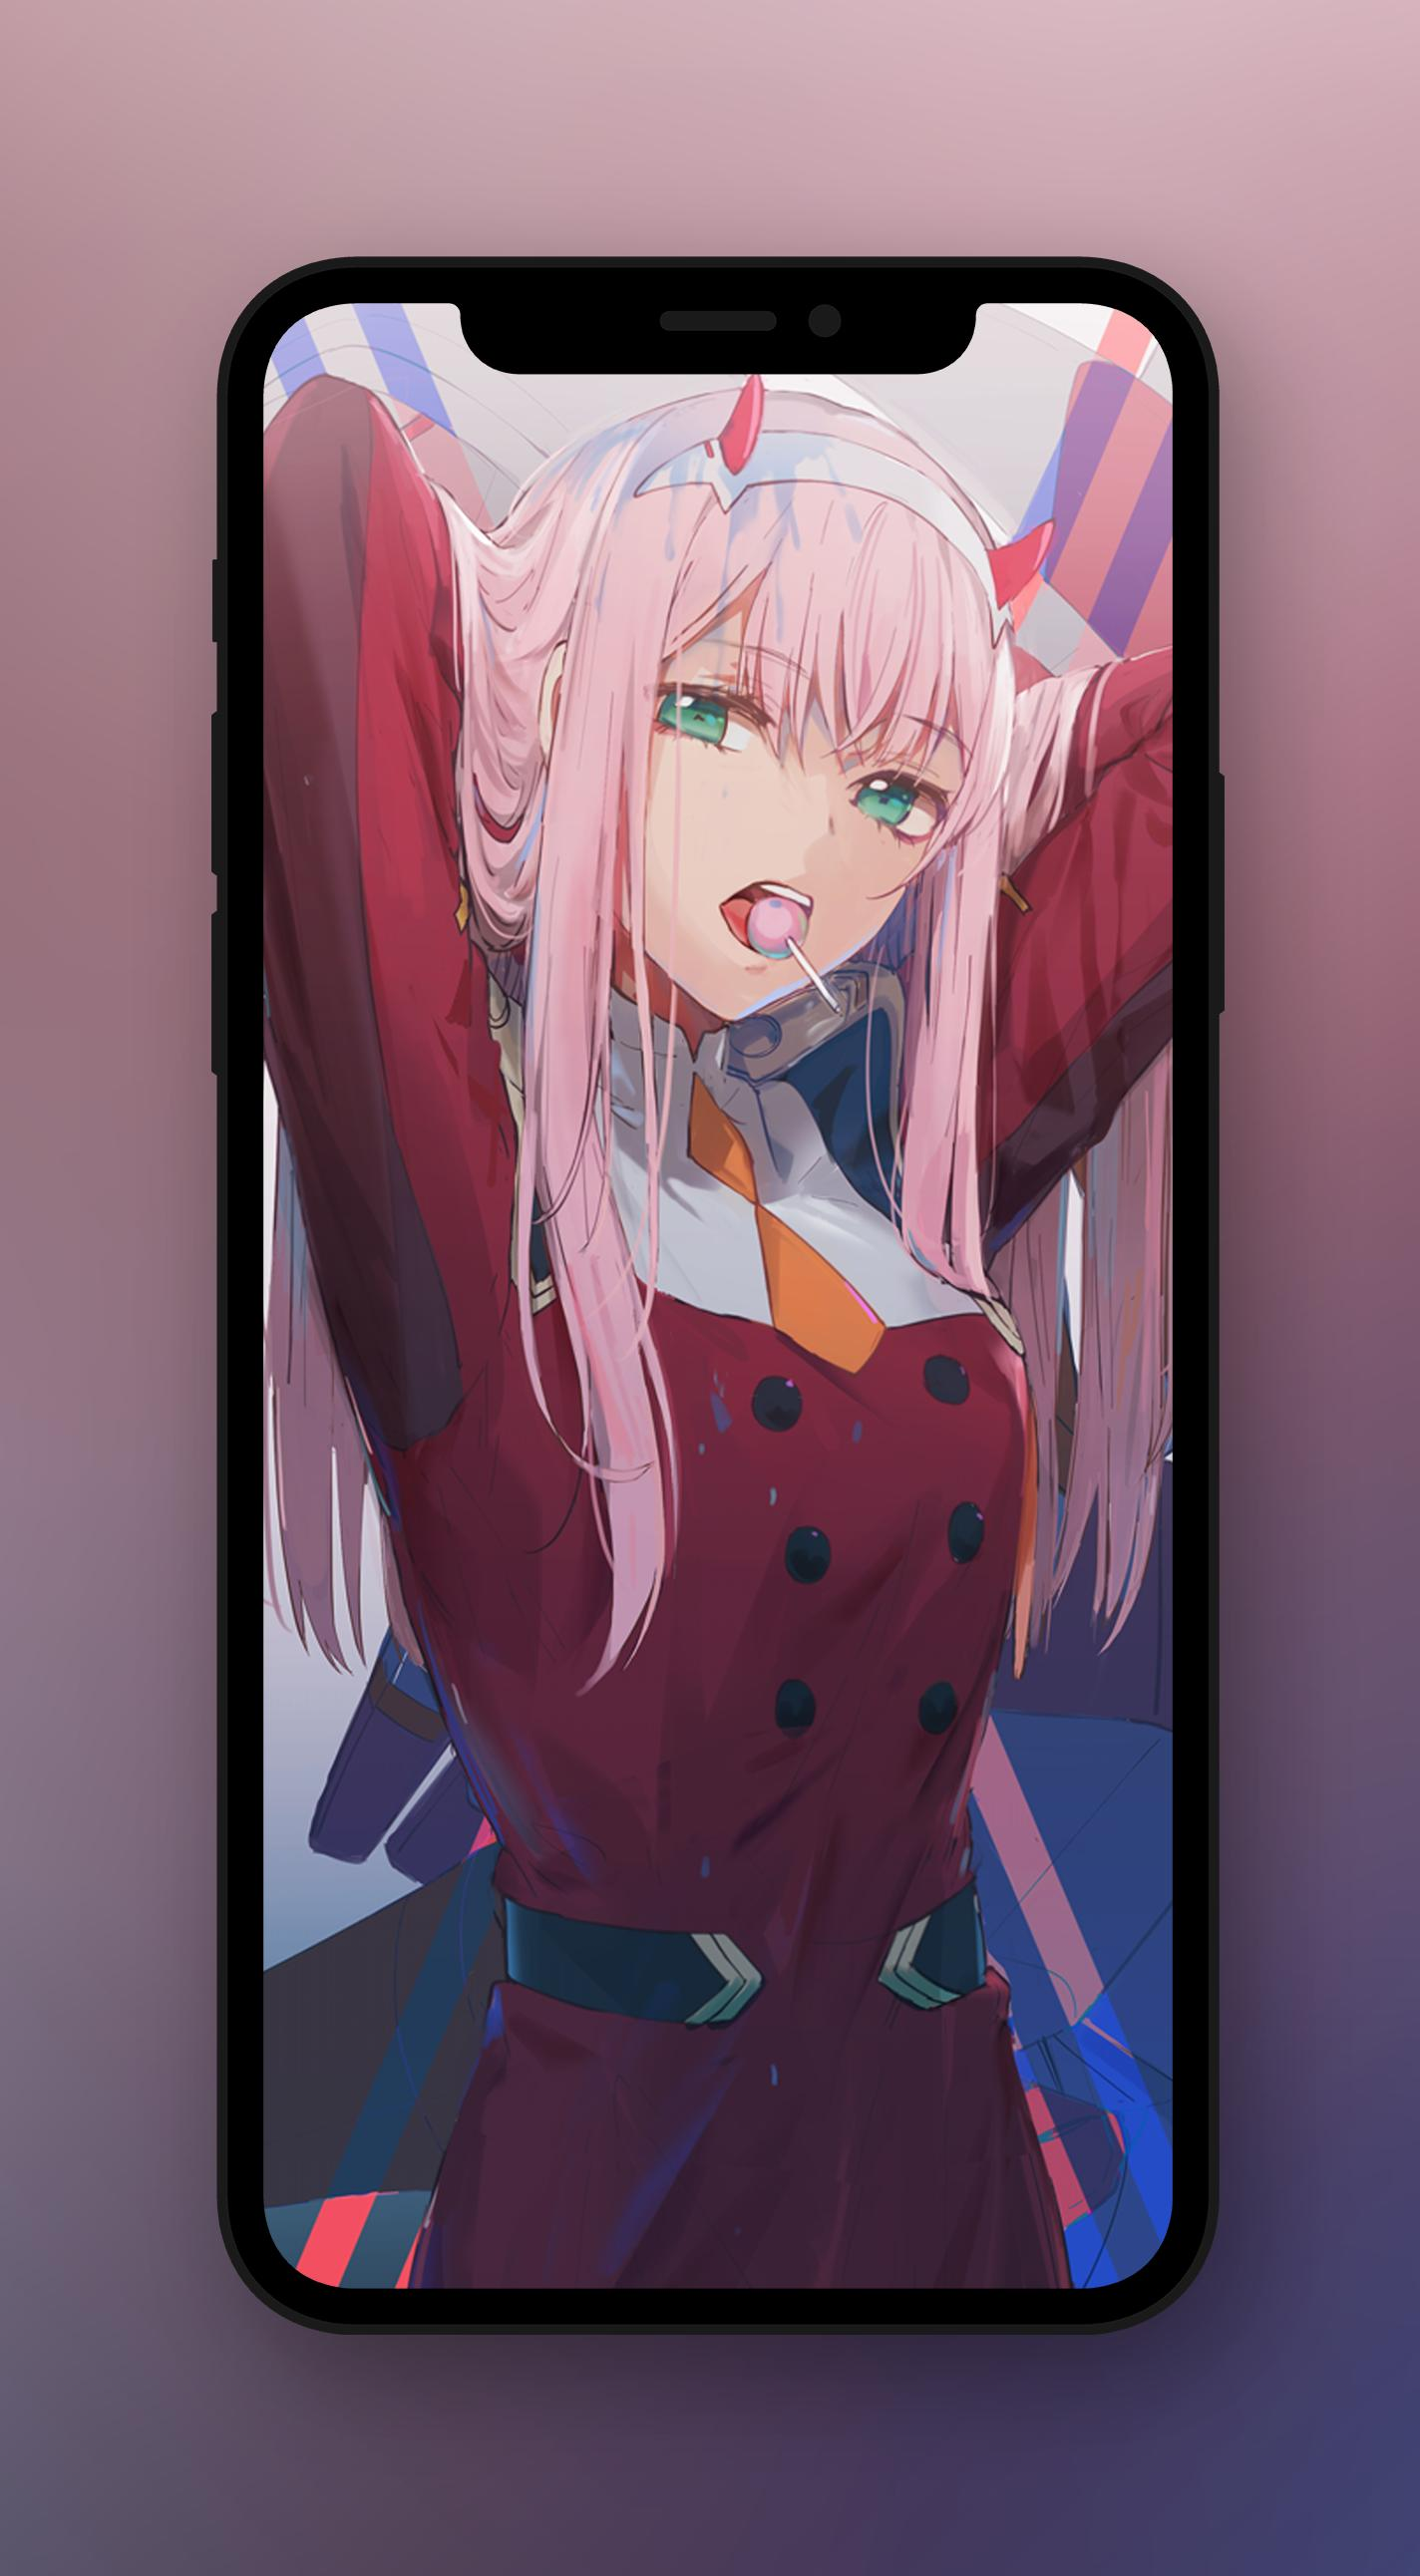 Zero Two Anime Wallpaper HD 4K for Android - APK Download